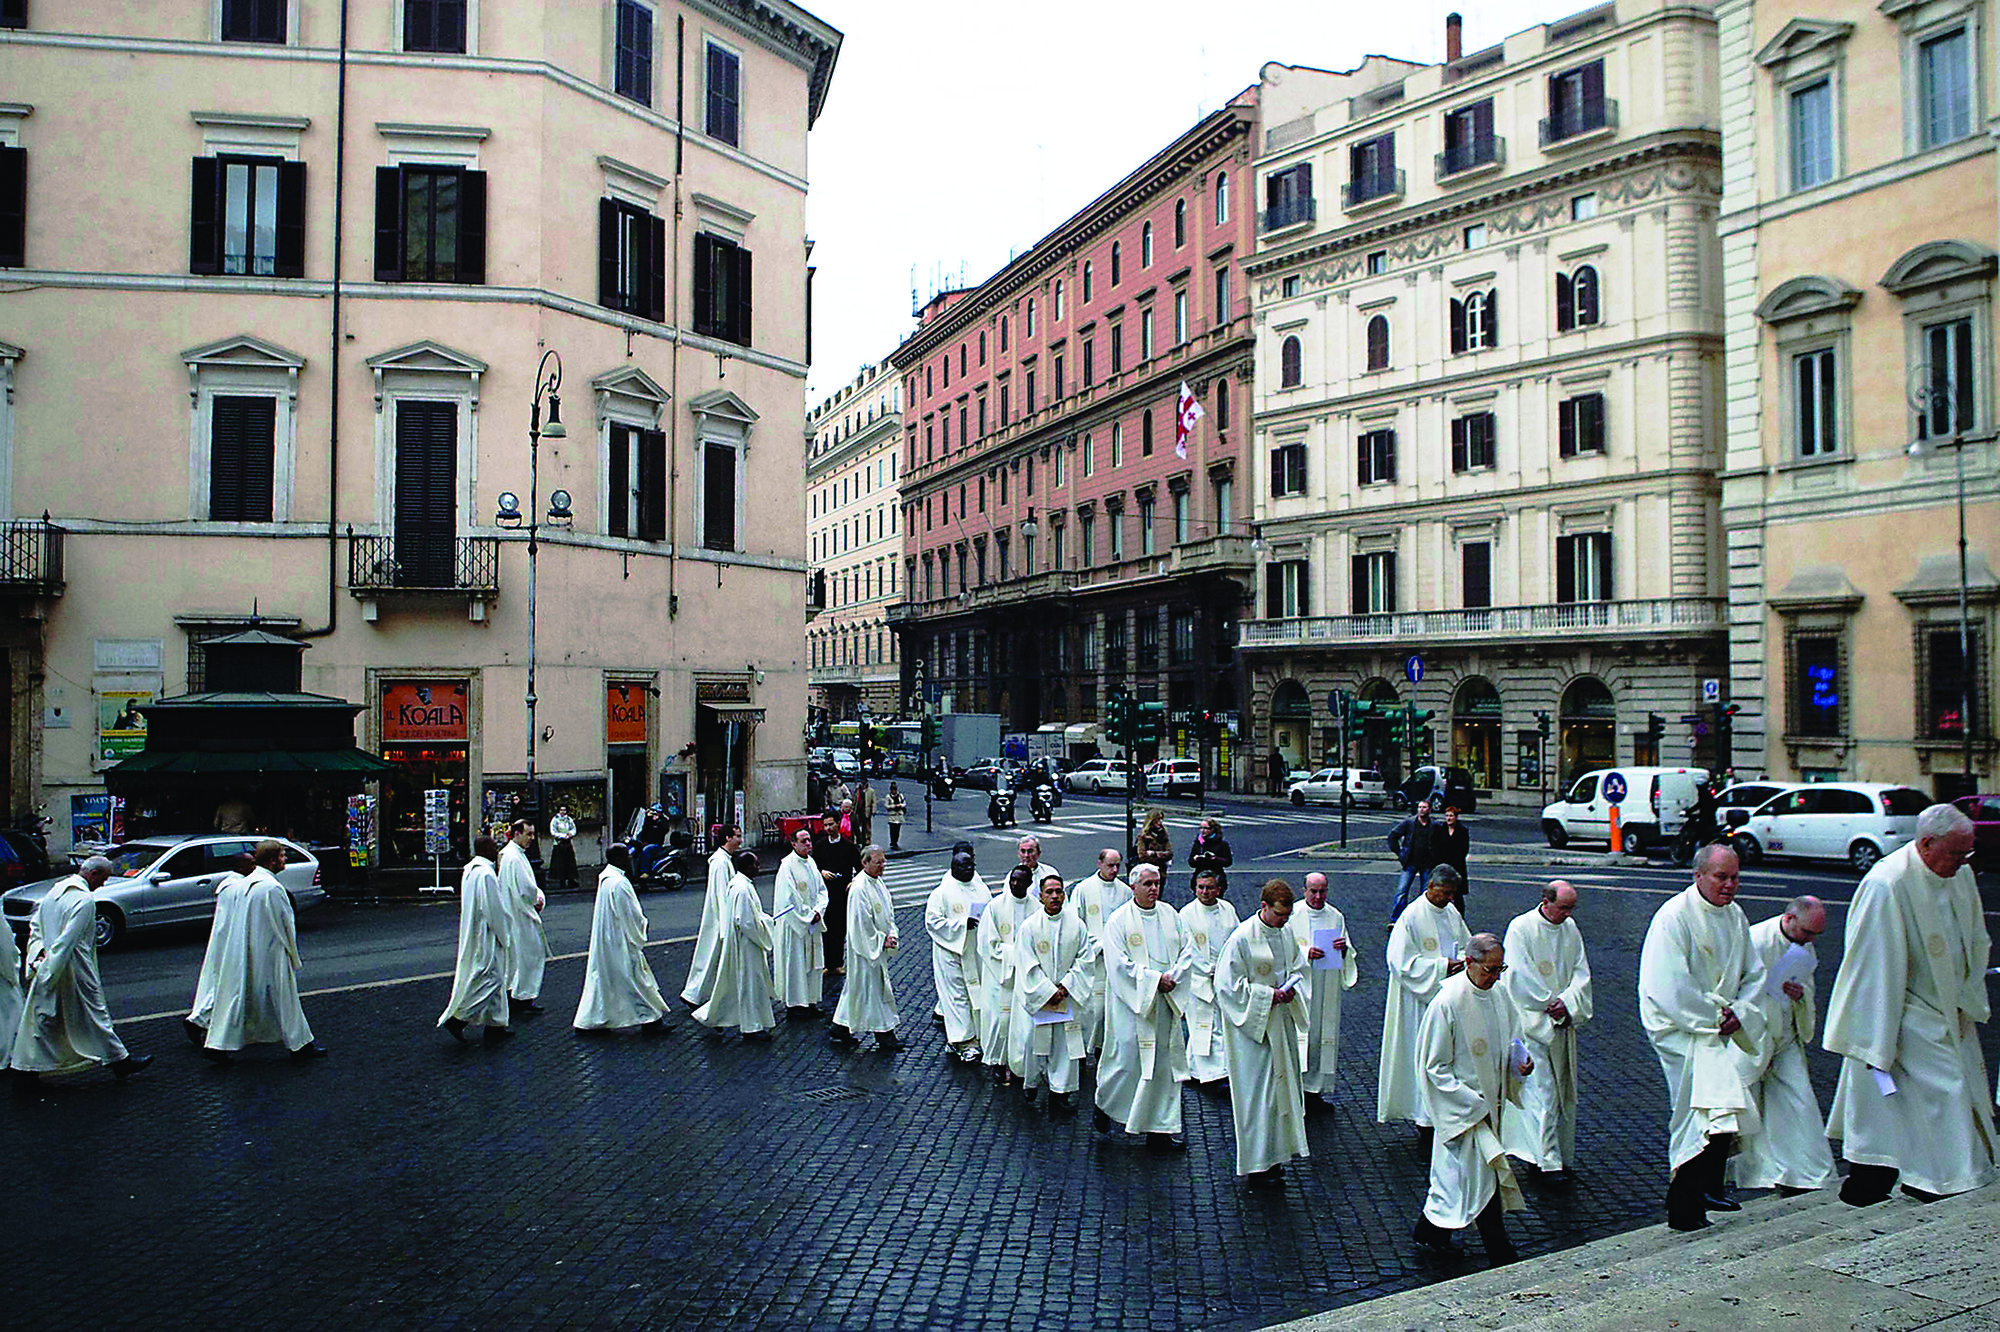 Jesuits process through the streets of Rome to celebrate Mass together at General Congregation 35 in 2008, when the Rev. Adolfo Nicolas, S.J., was elected superior general. The Jesuits will convene General Congregation 36 on Oct. 2 to elect Nicolas' successor. (Image credit: General Congregation 35)